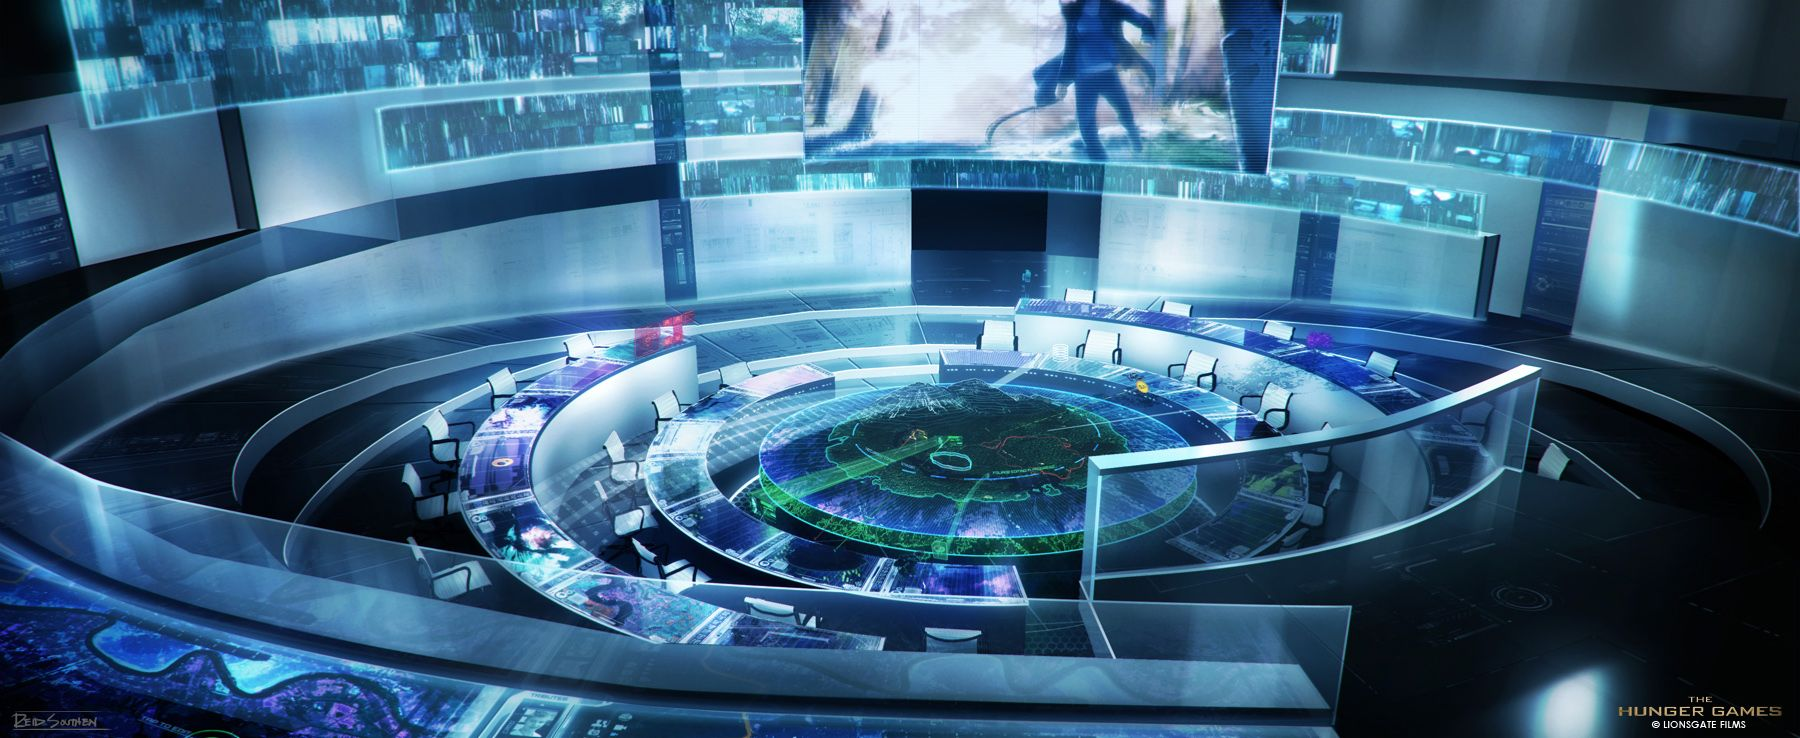 Hunger Games - Control Room by `Rahll on deviantART